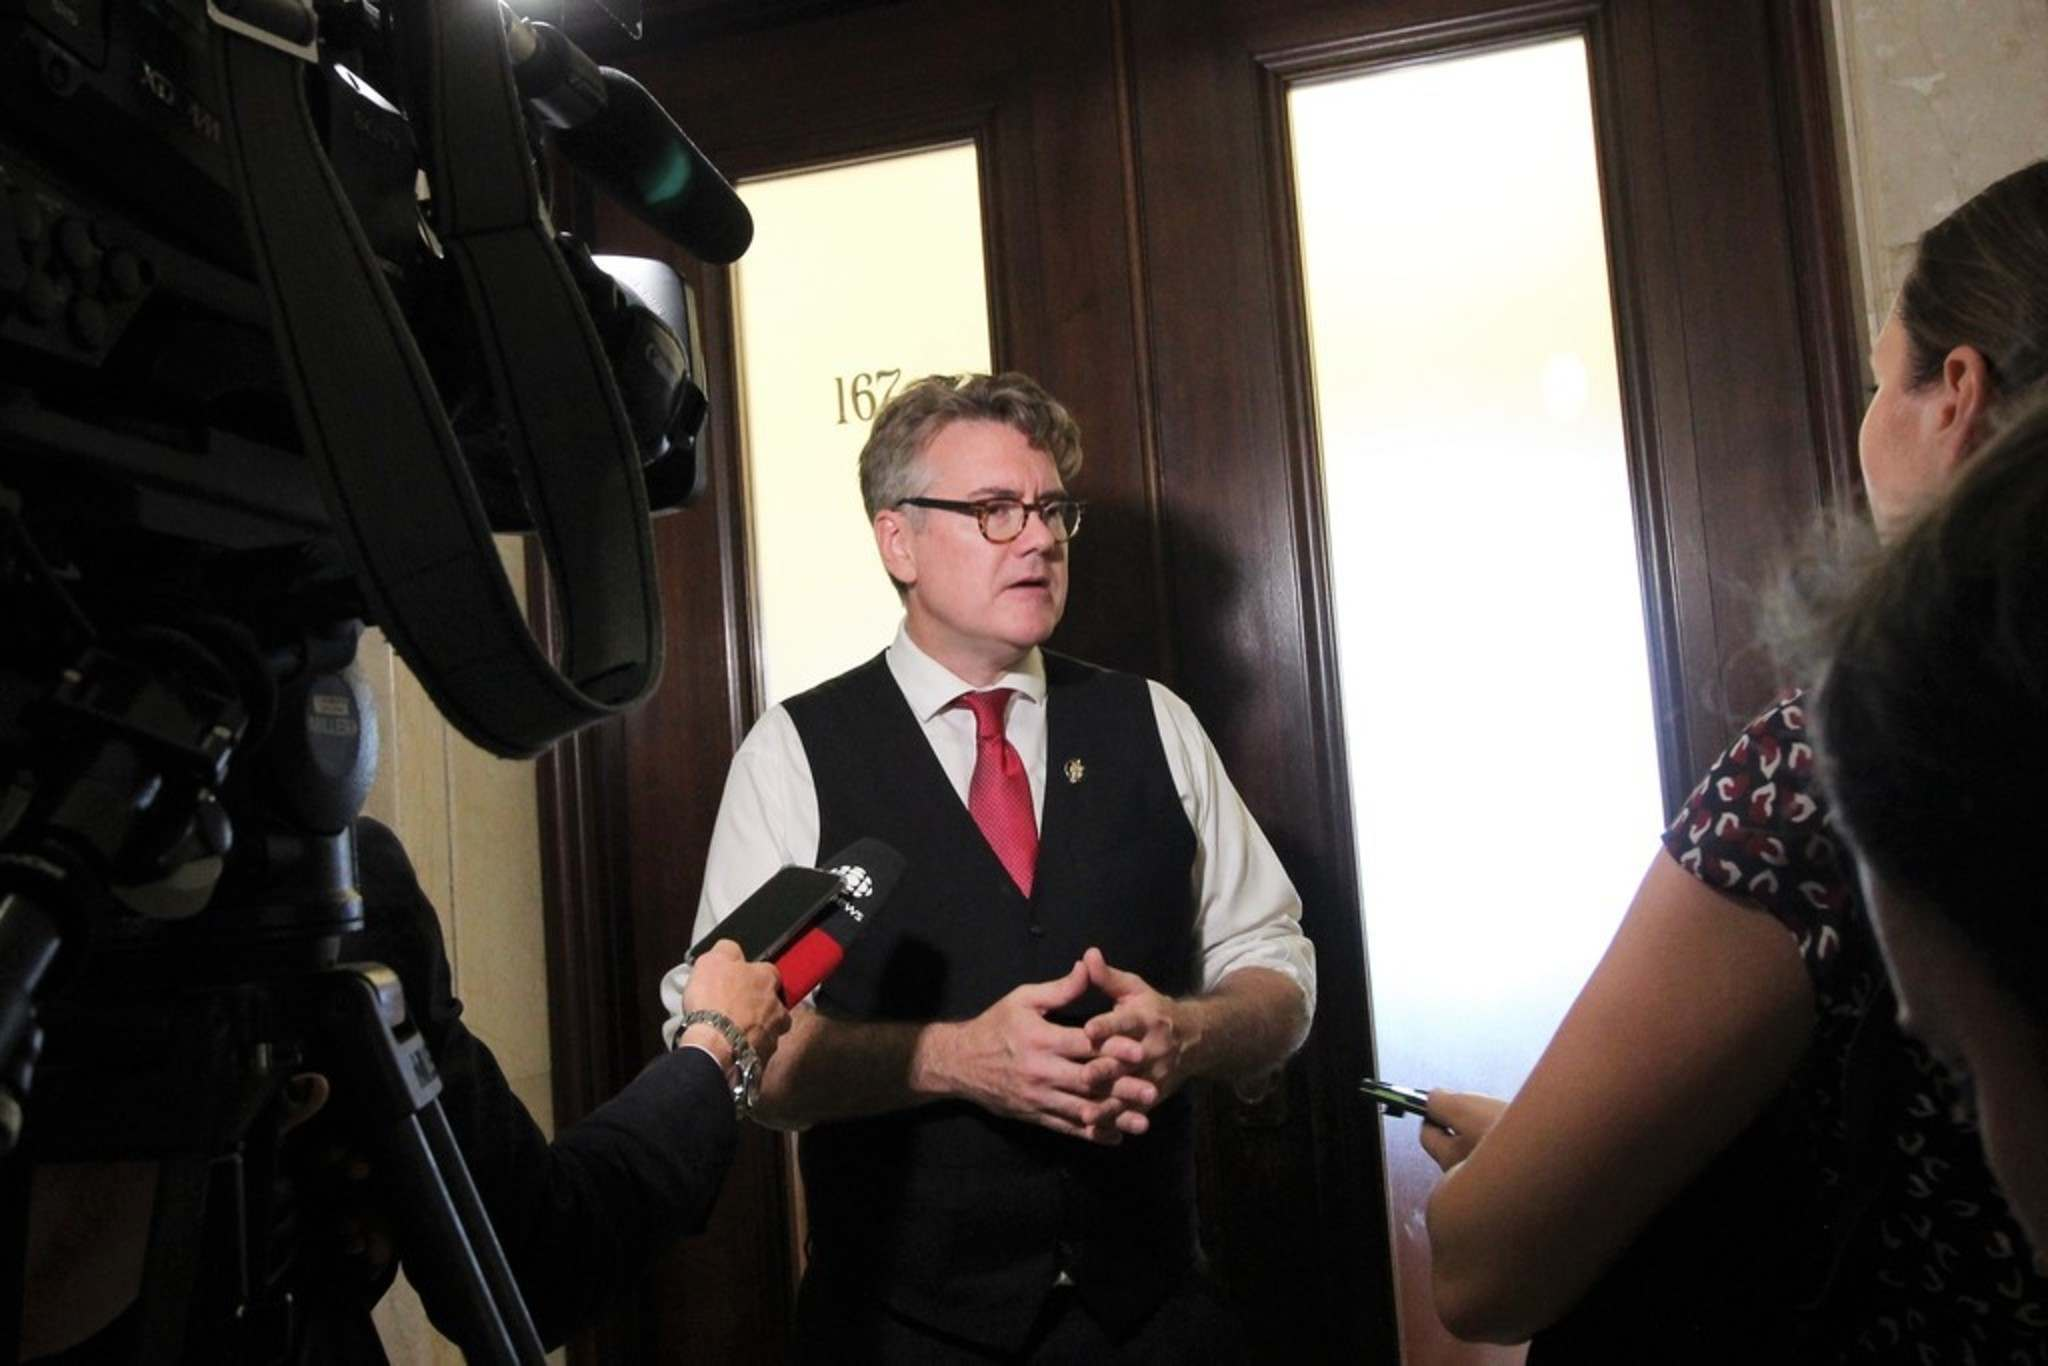 JESSICA BOTELHO-URBANSKI / WINNIPEG FREE PRESS FILES</p><p>The Manitoba Liberal Party leader Dougald Lamont was elected as the MLA for St. Boniface over the summer and took his seat in the legislature, Wednesday.</p>